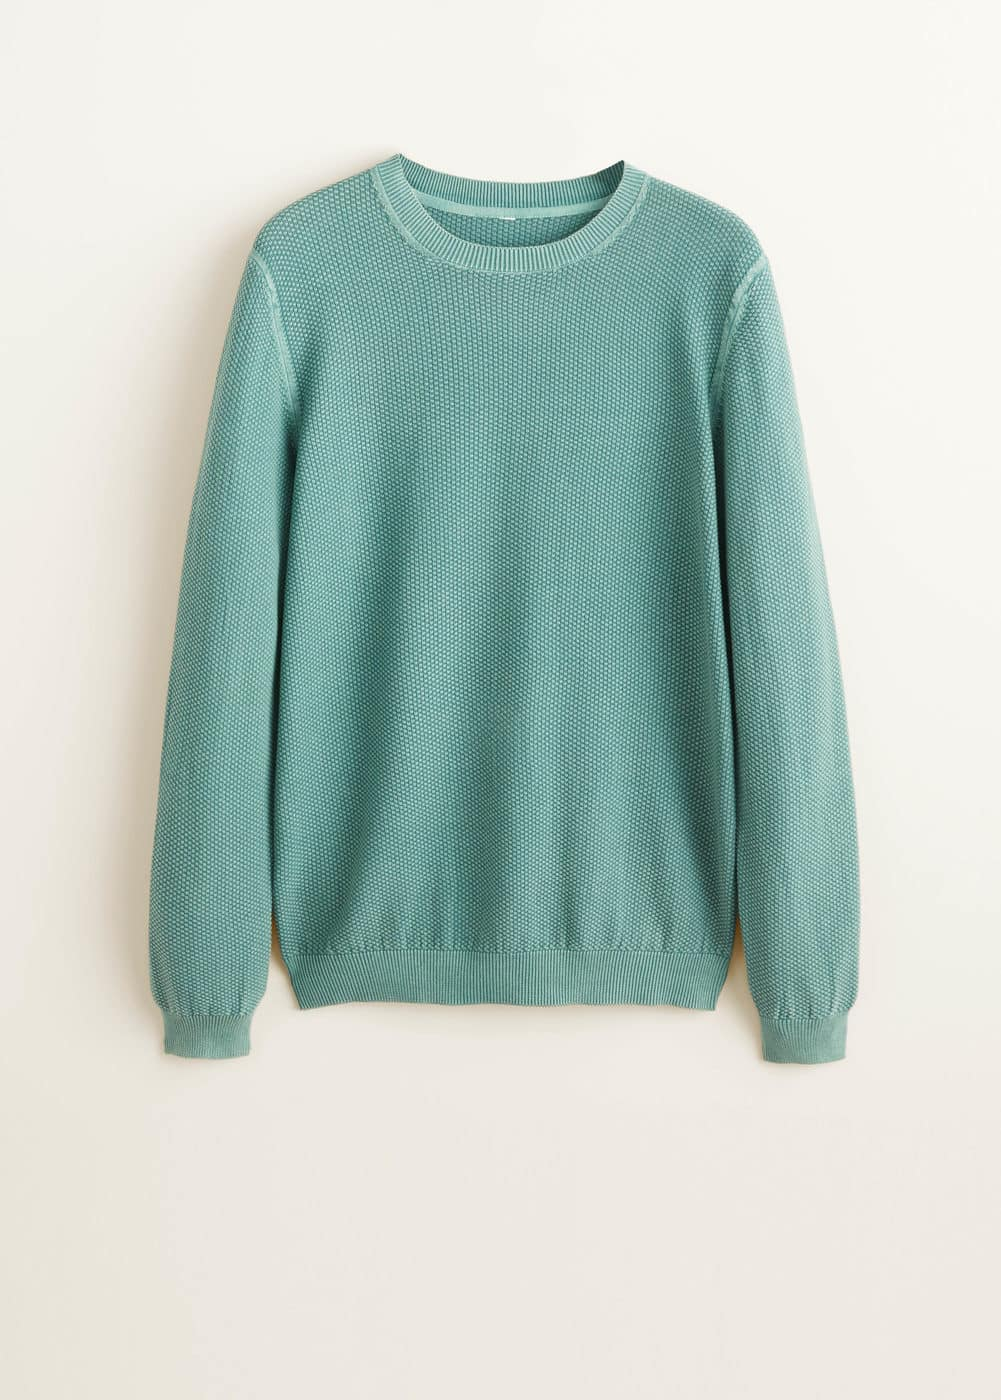 Mango - Structured cotton sweater - 5